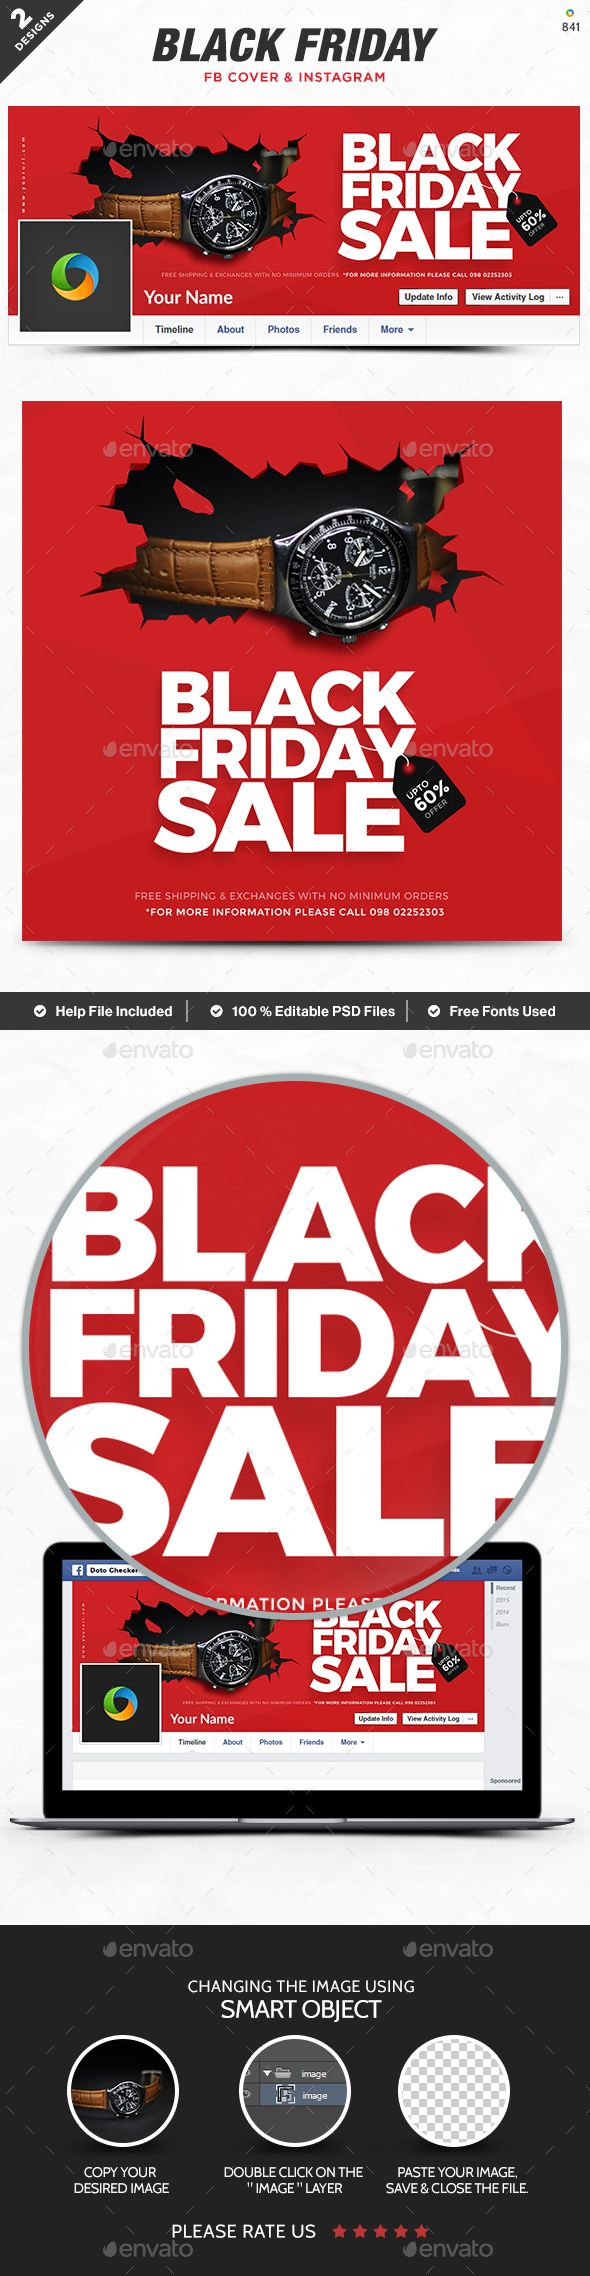 Black Friday Facebook Cover Instagram Templates